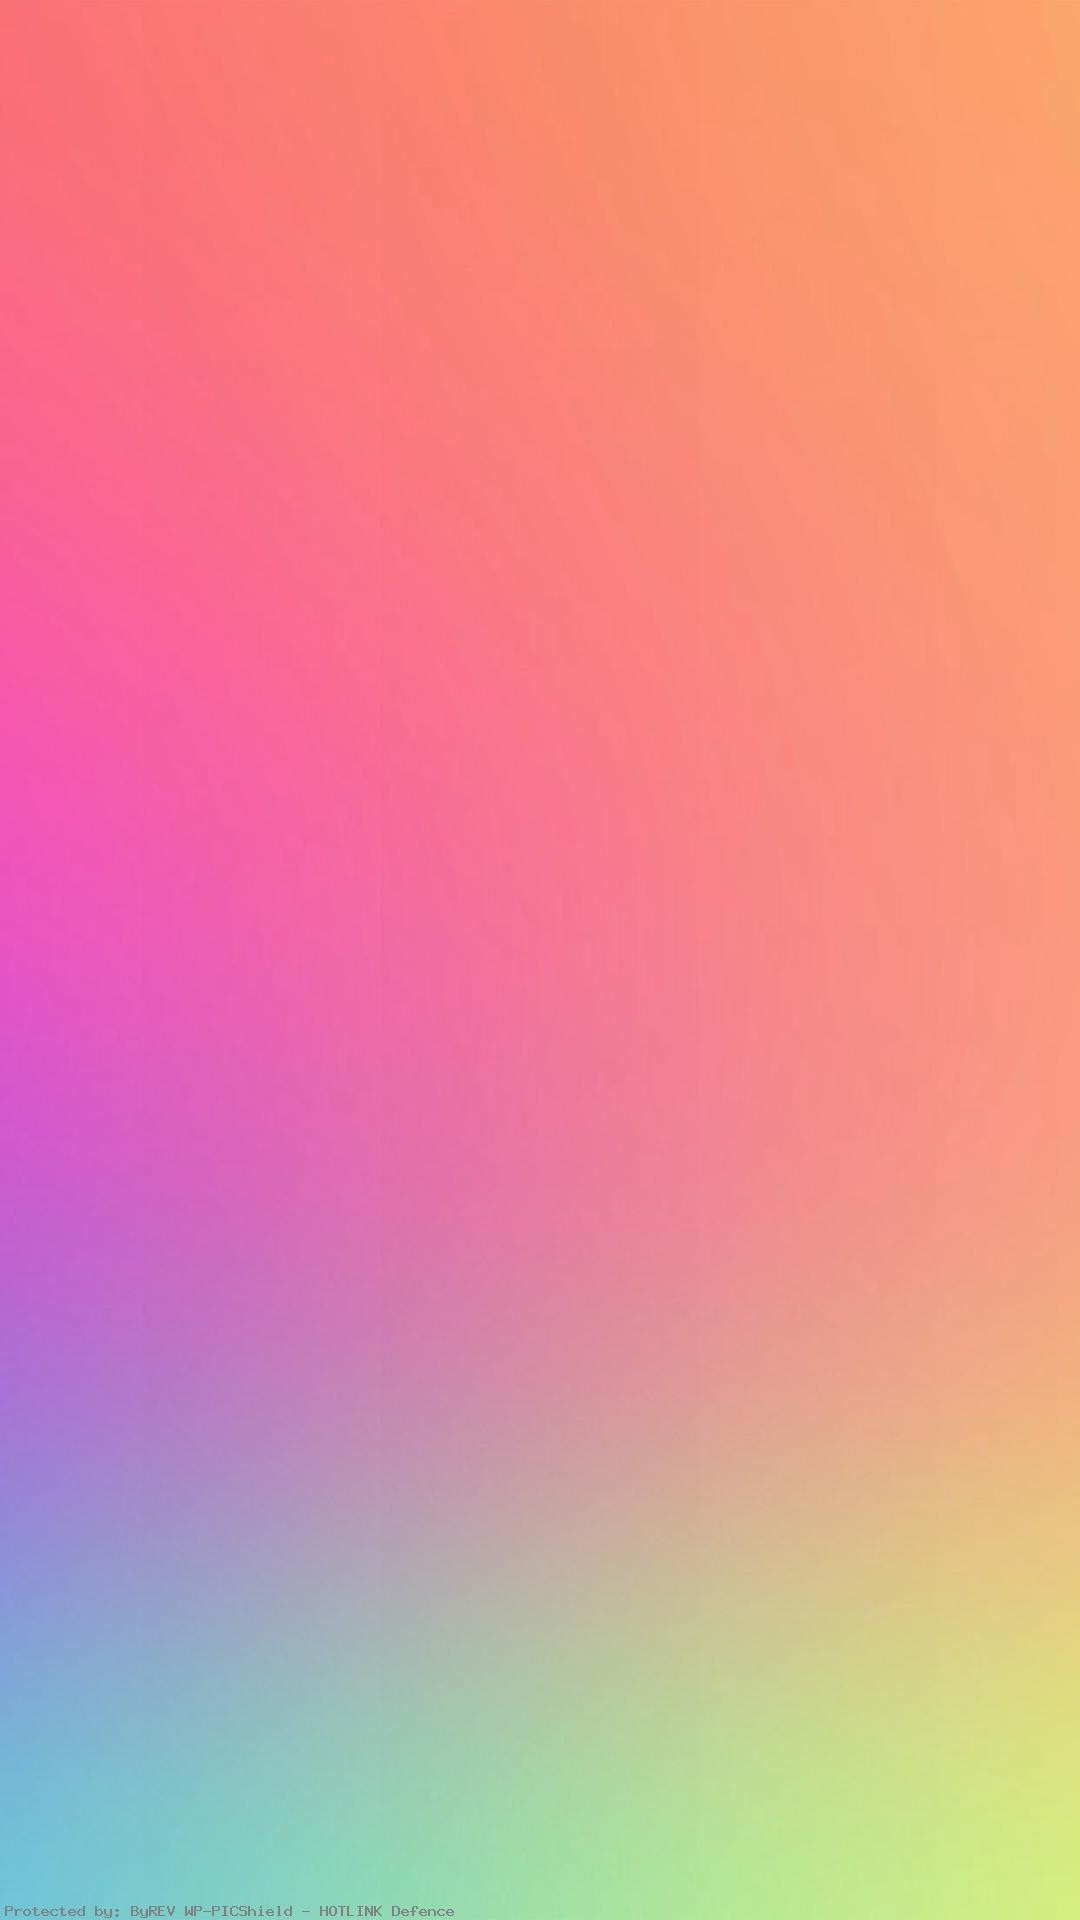 1080x1920 Orange-Sunshine-Gradation-Blur-iPhone-wallpaper-wp60010674